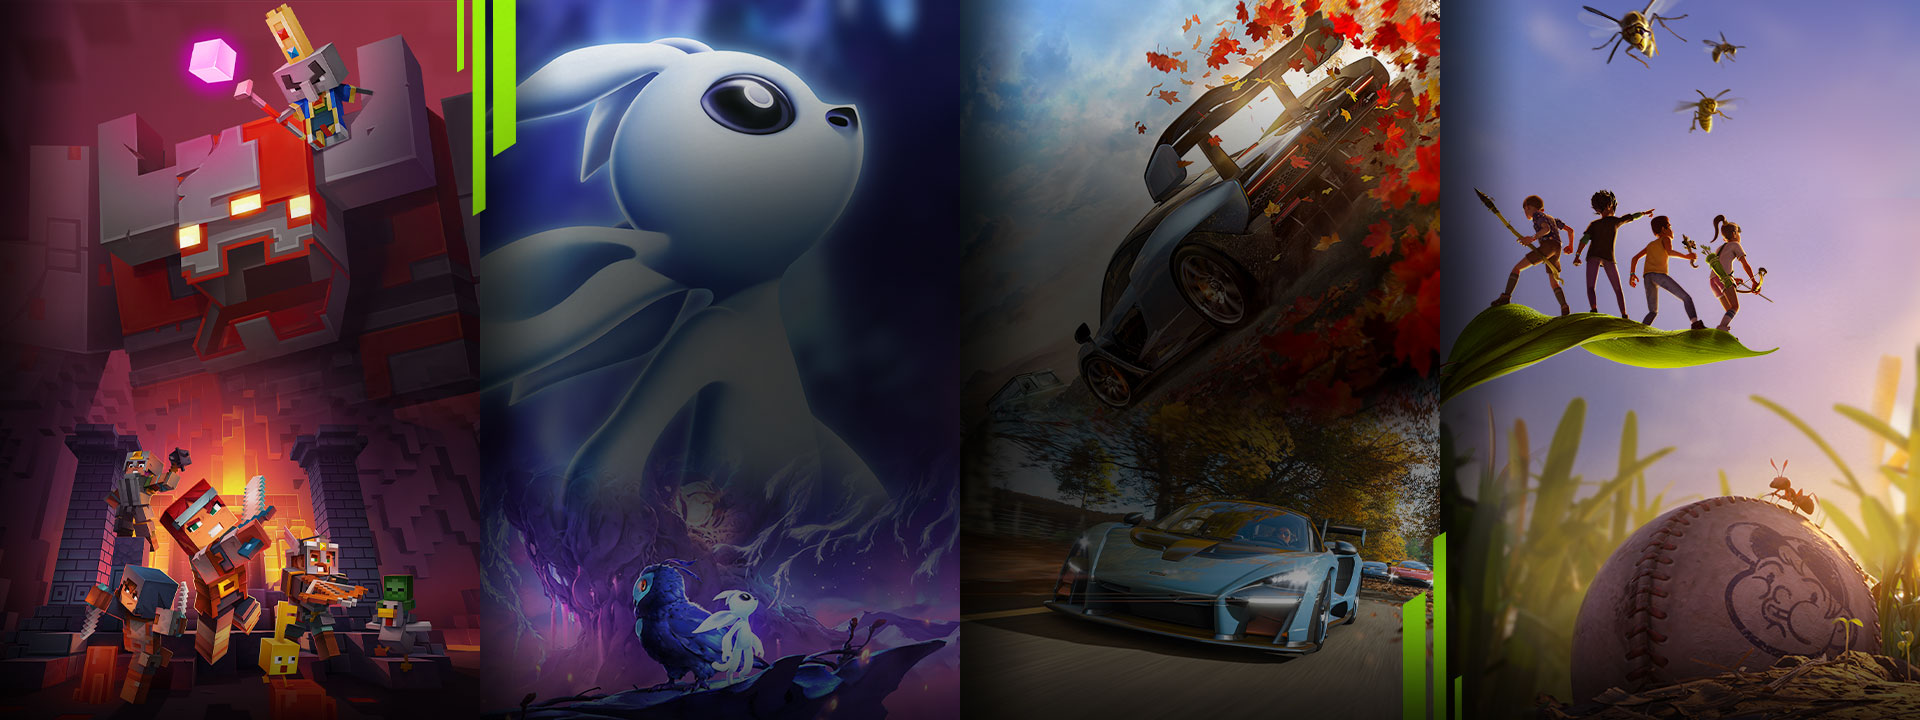 Une sélection de jeux disponibles sur Xbox Game Pass, incluant Minecraft: Dungeons, Ori and the Will of the Wisps, Forza Horizon 4 et Grounded.